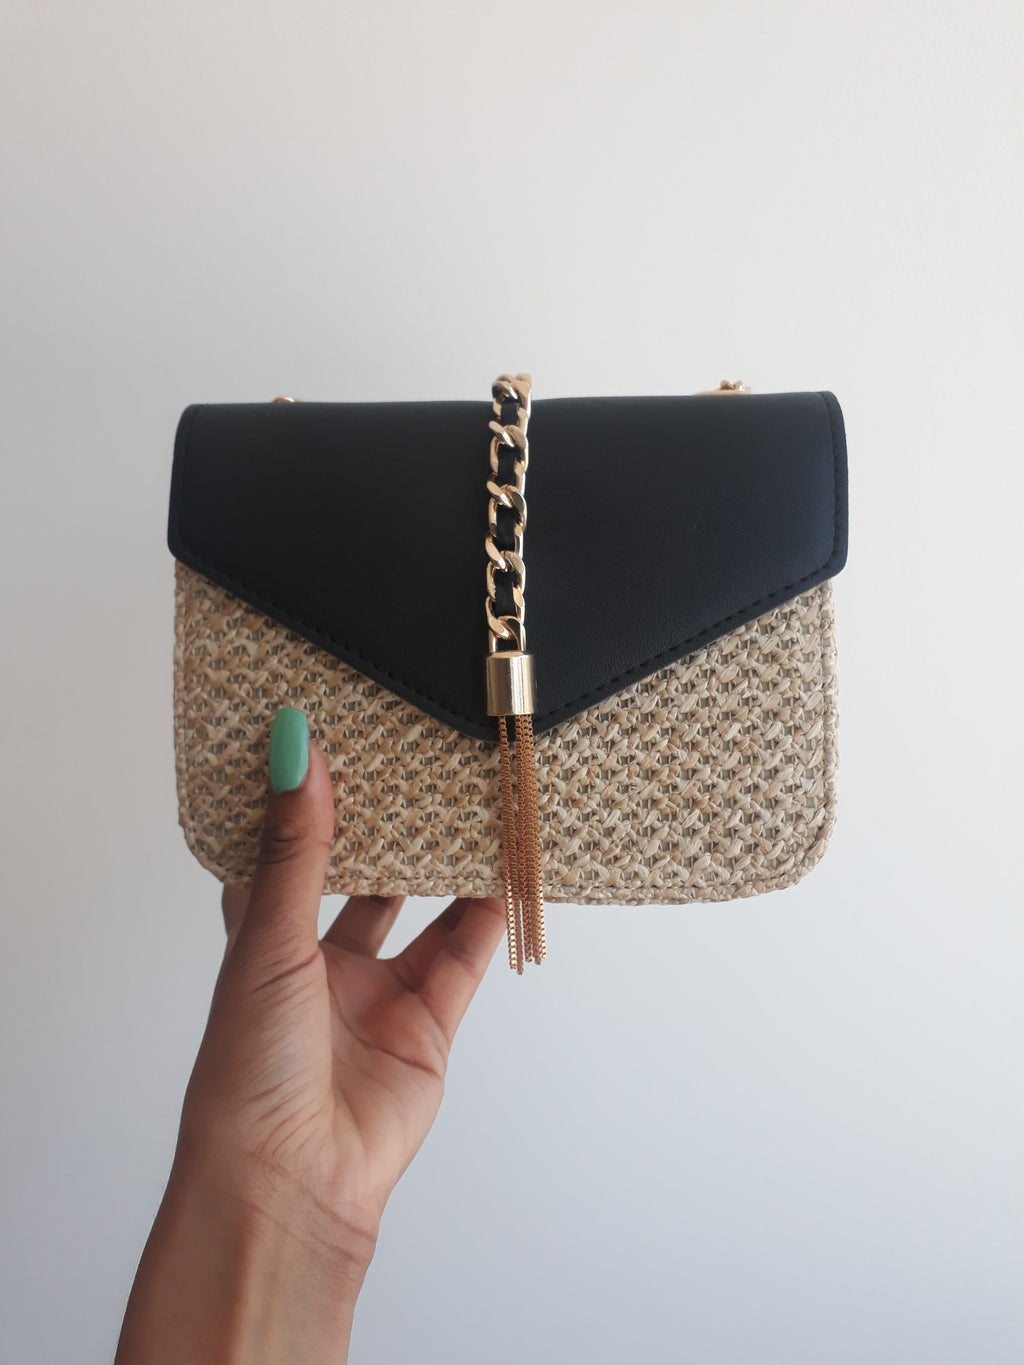 Santorini Straw Crossbody Handbag in Black